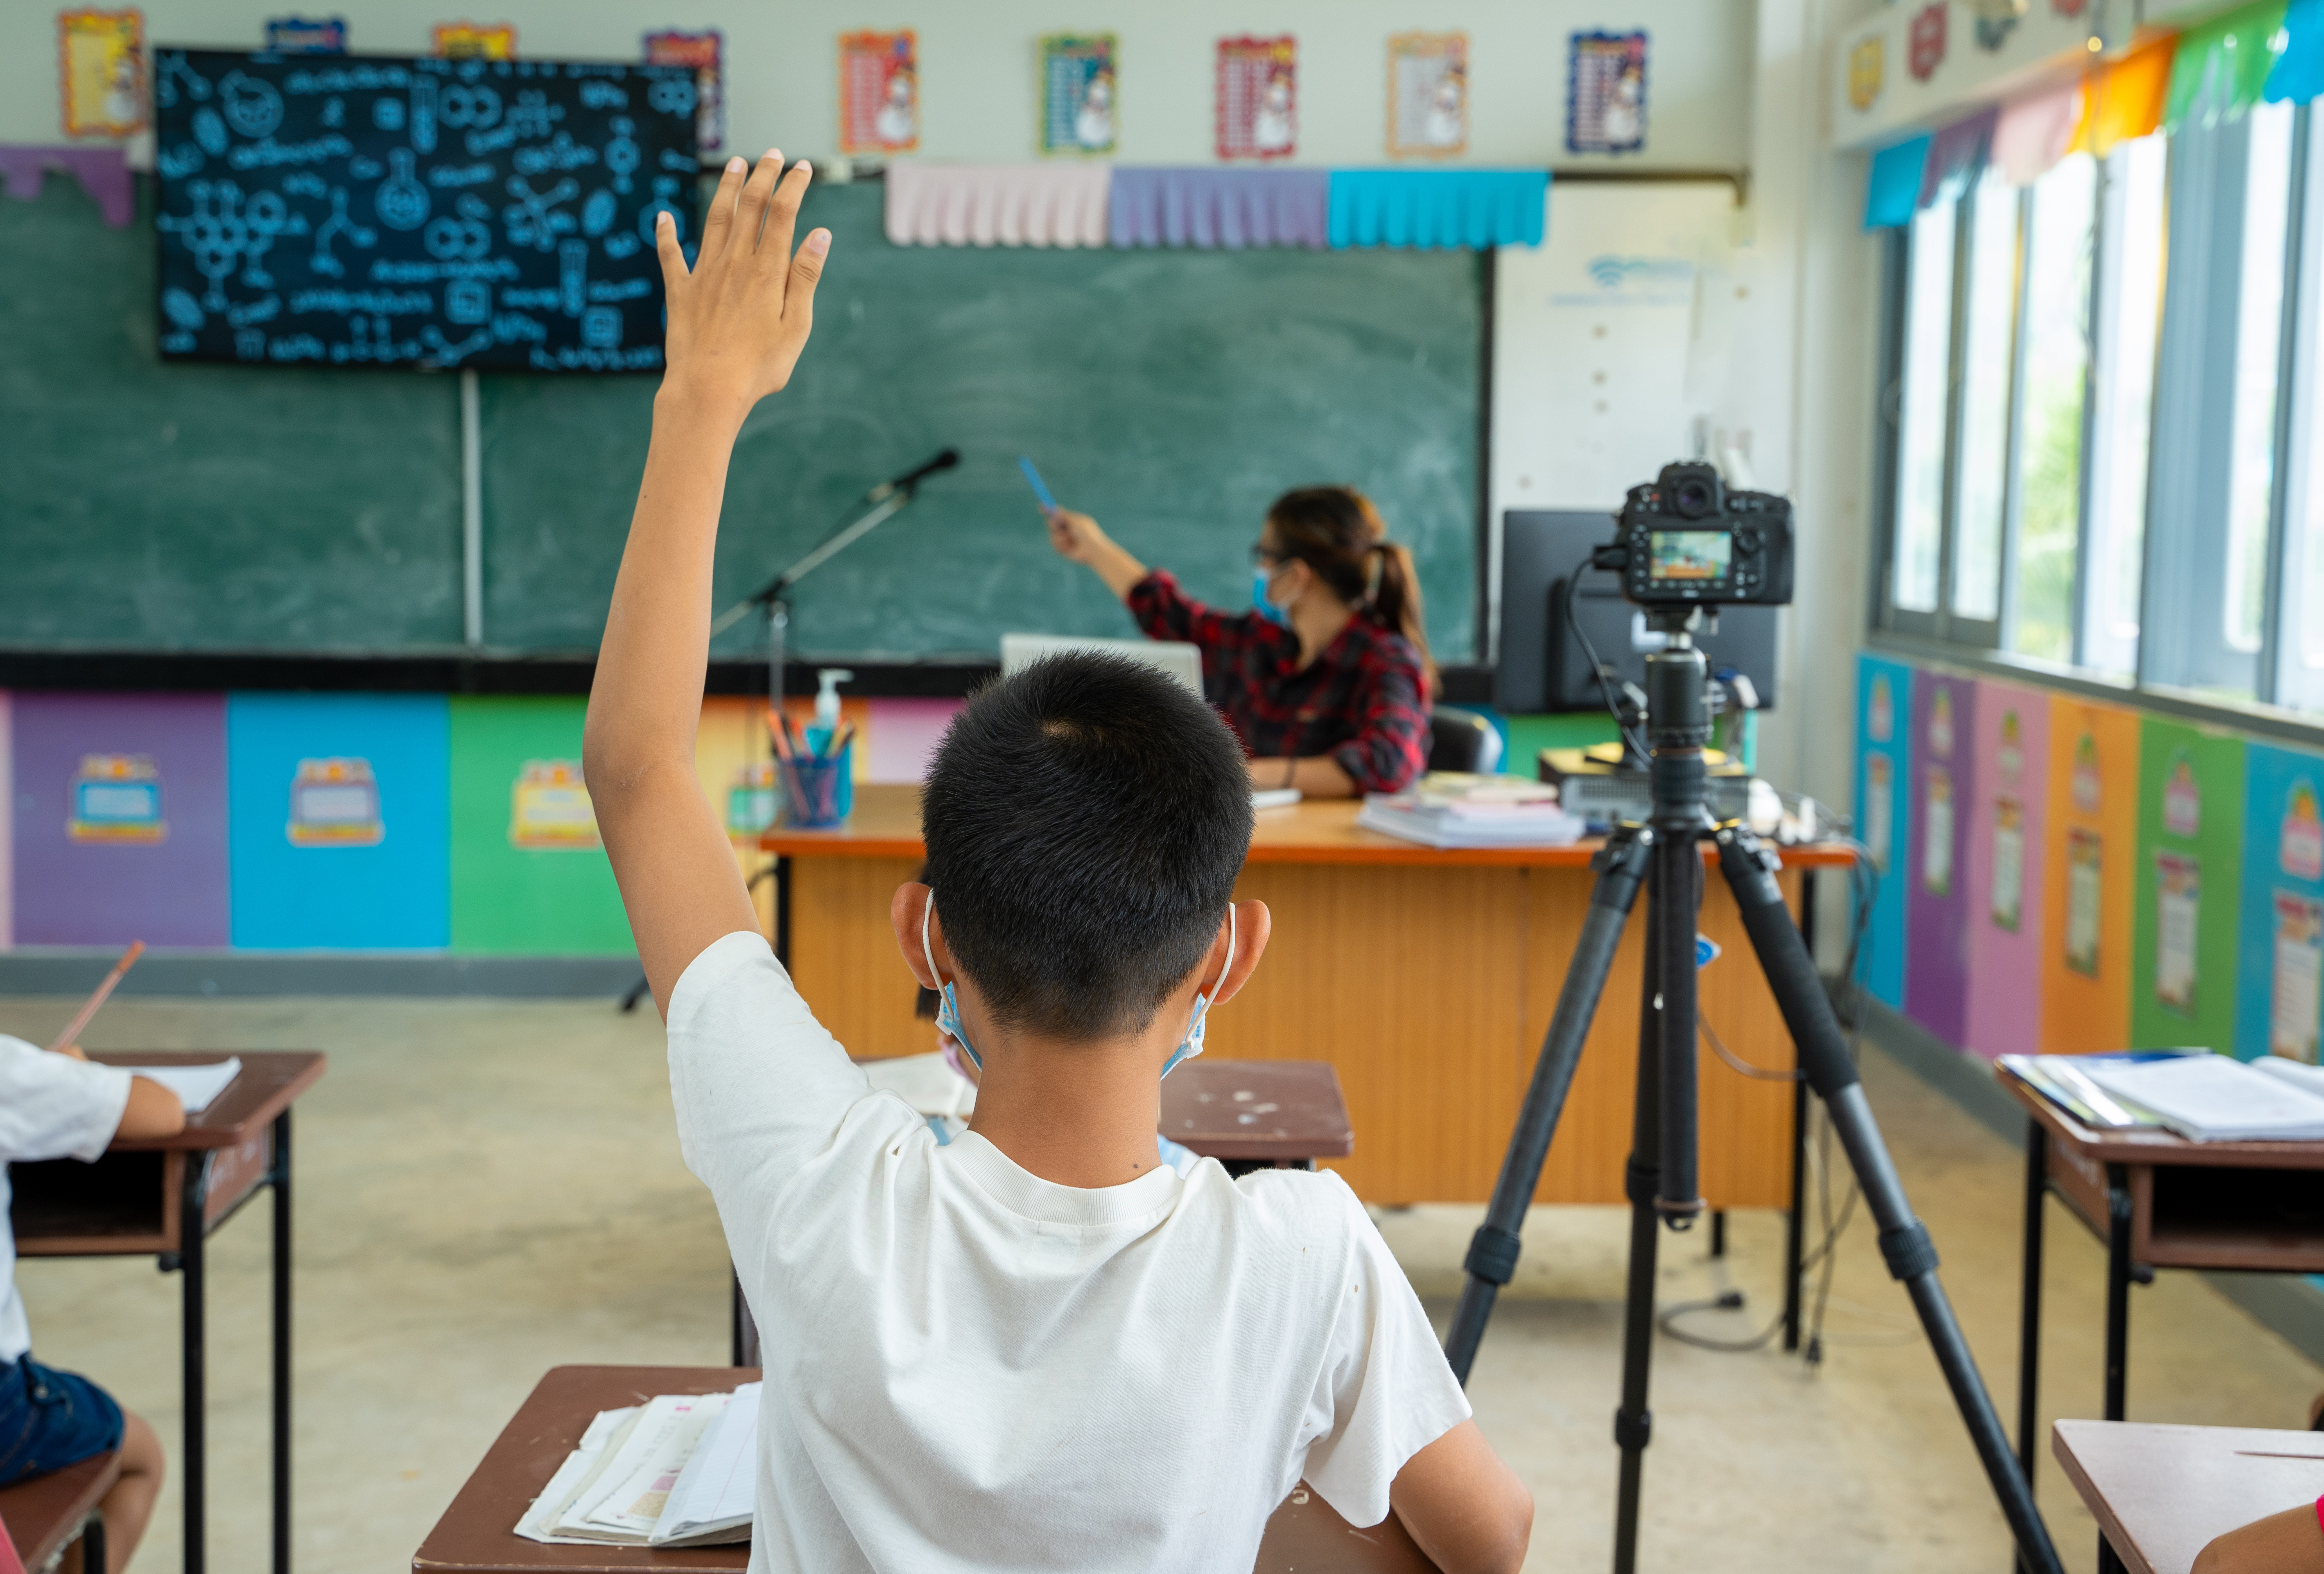 A child wearing a facemask raises his hand in a classroom. A video camera to include children learning remotely is at his right.